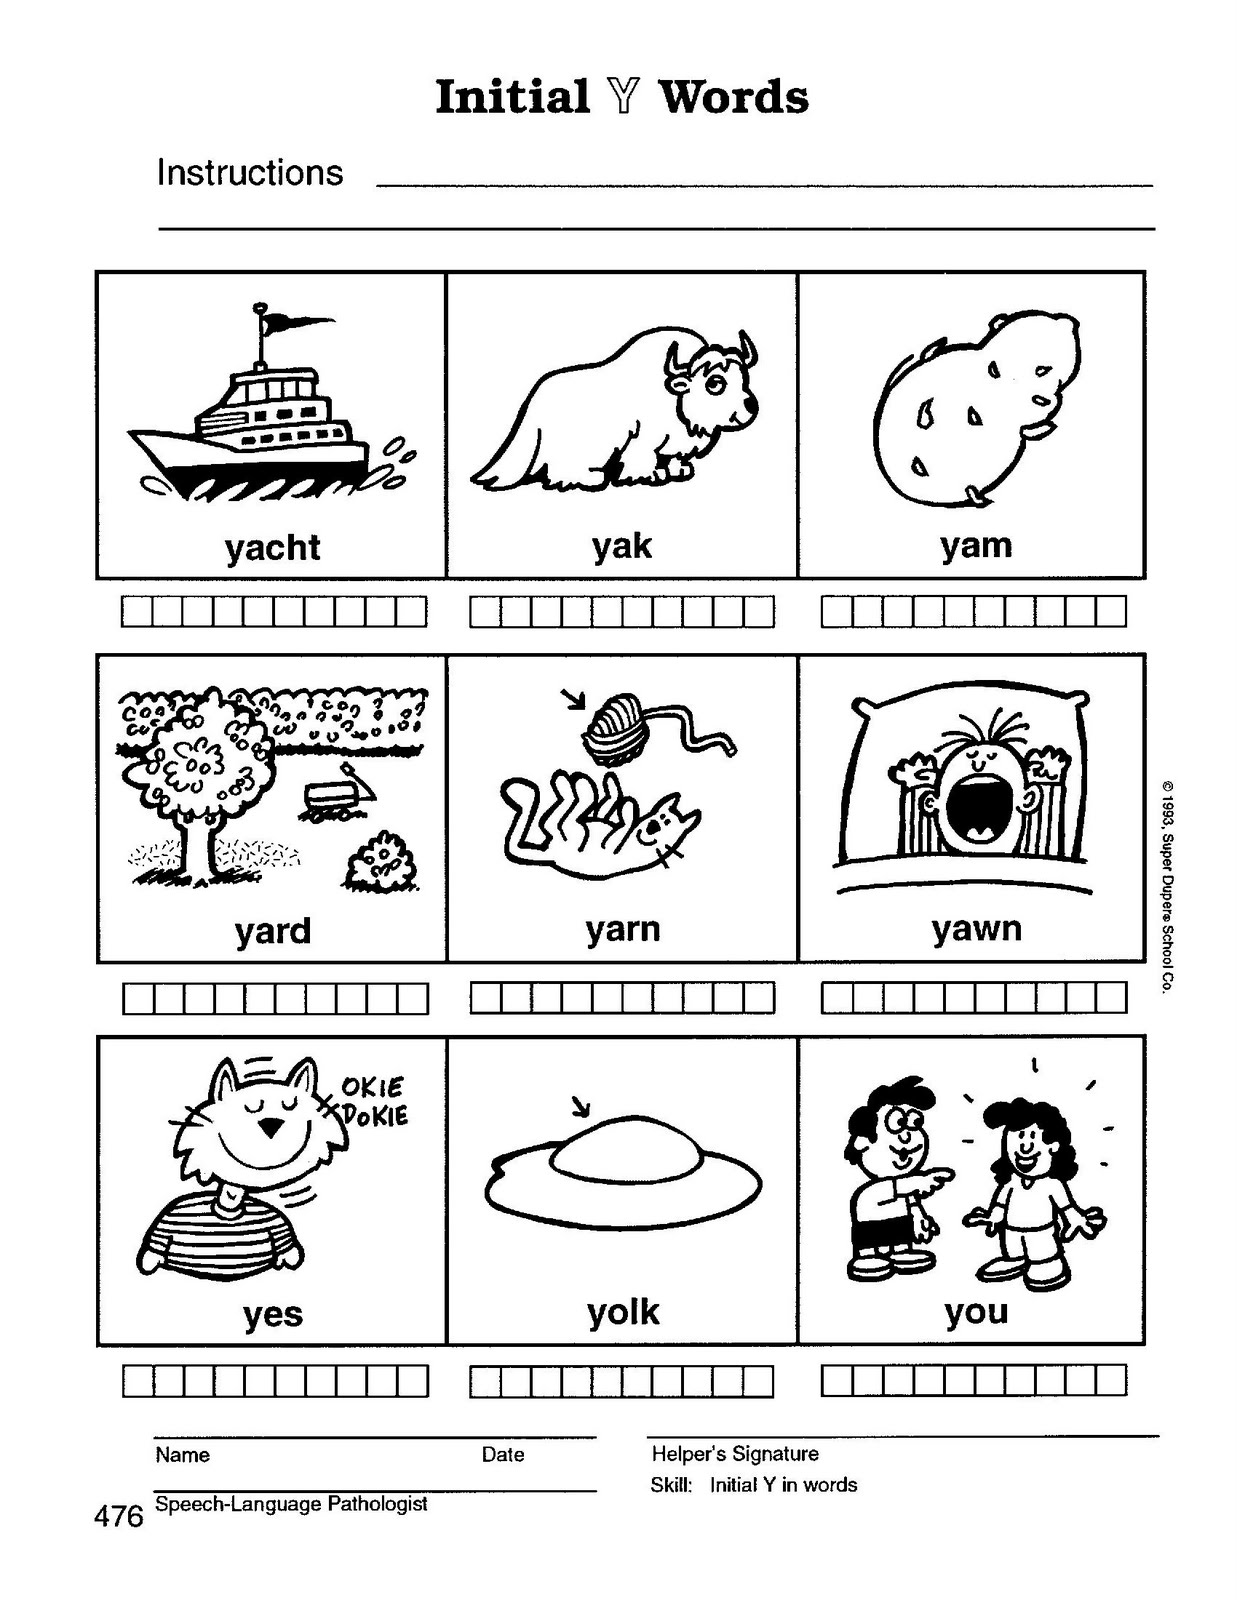 Speech Therapy with Miss Nicole: Y initial words